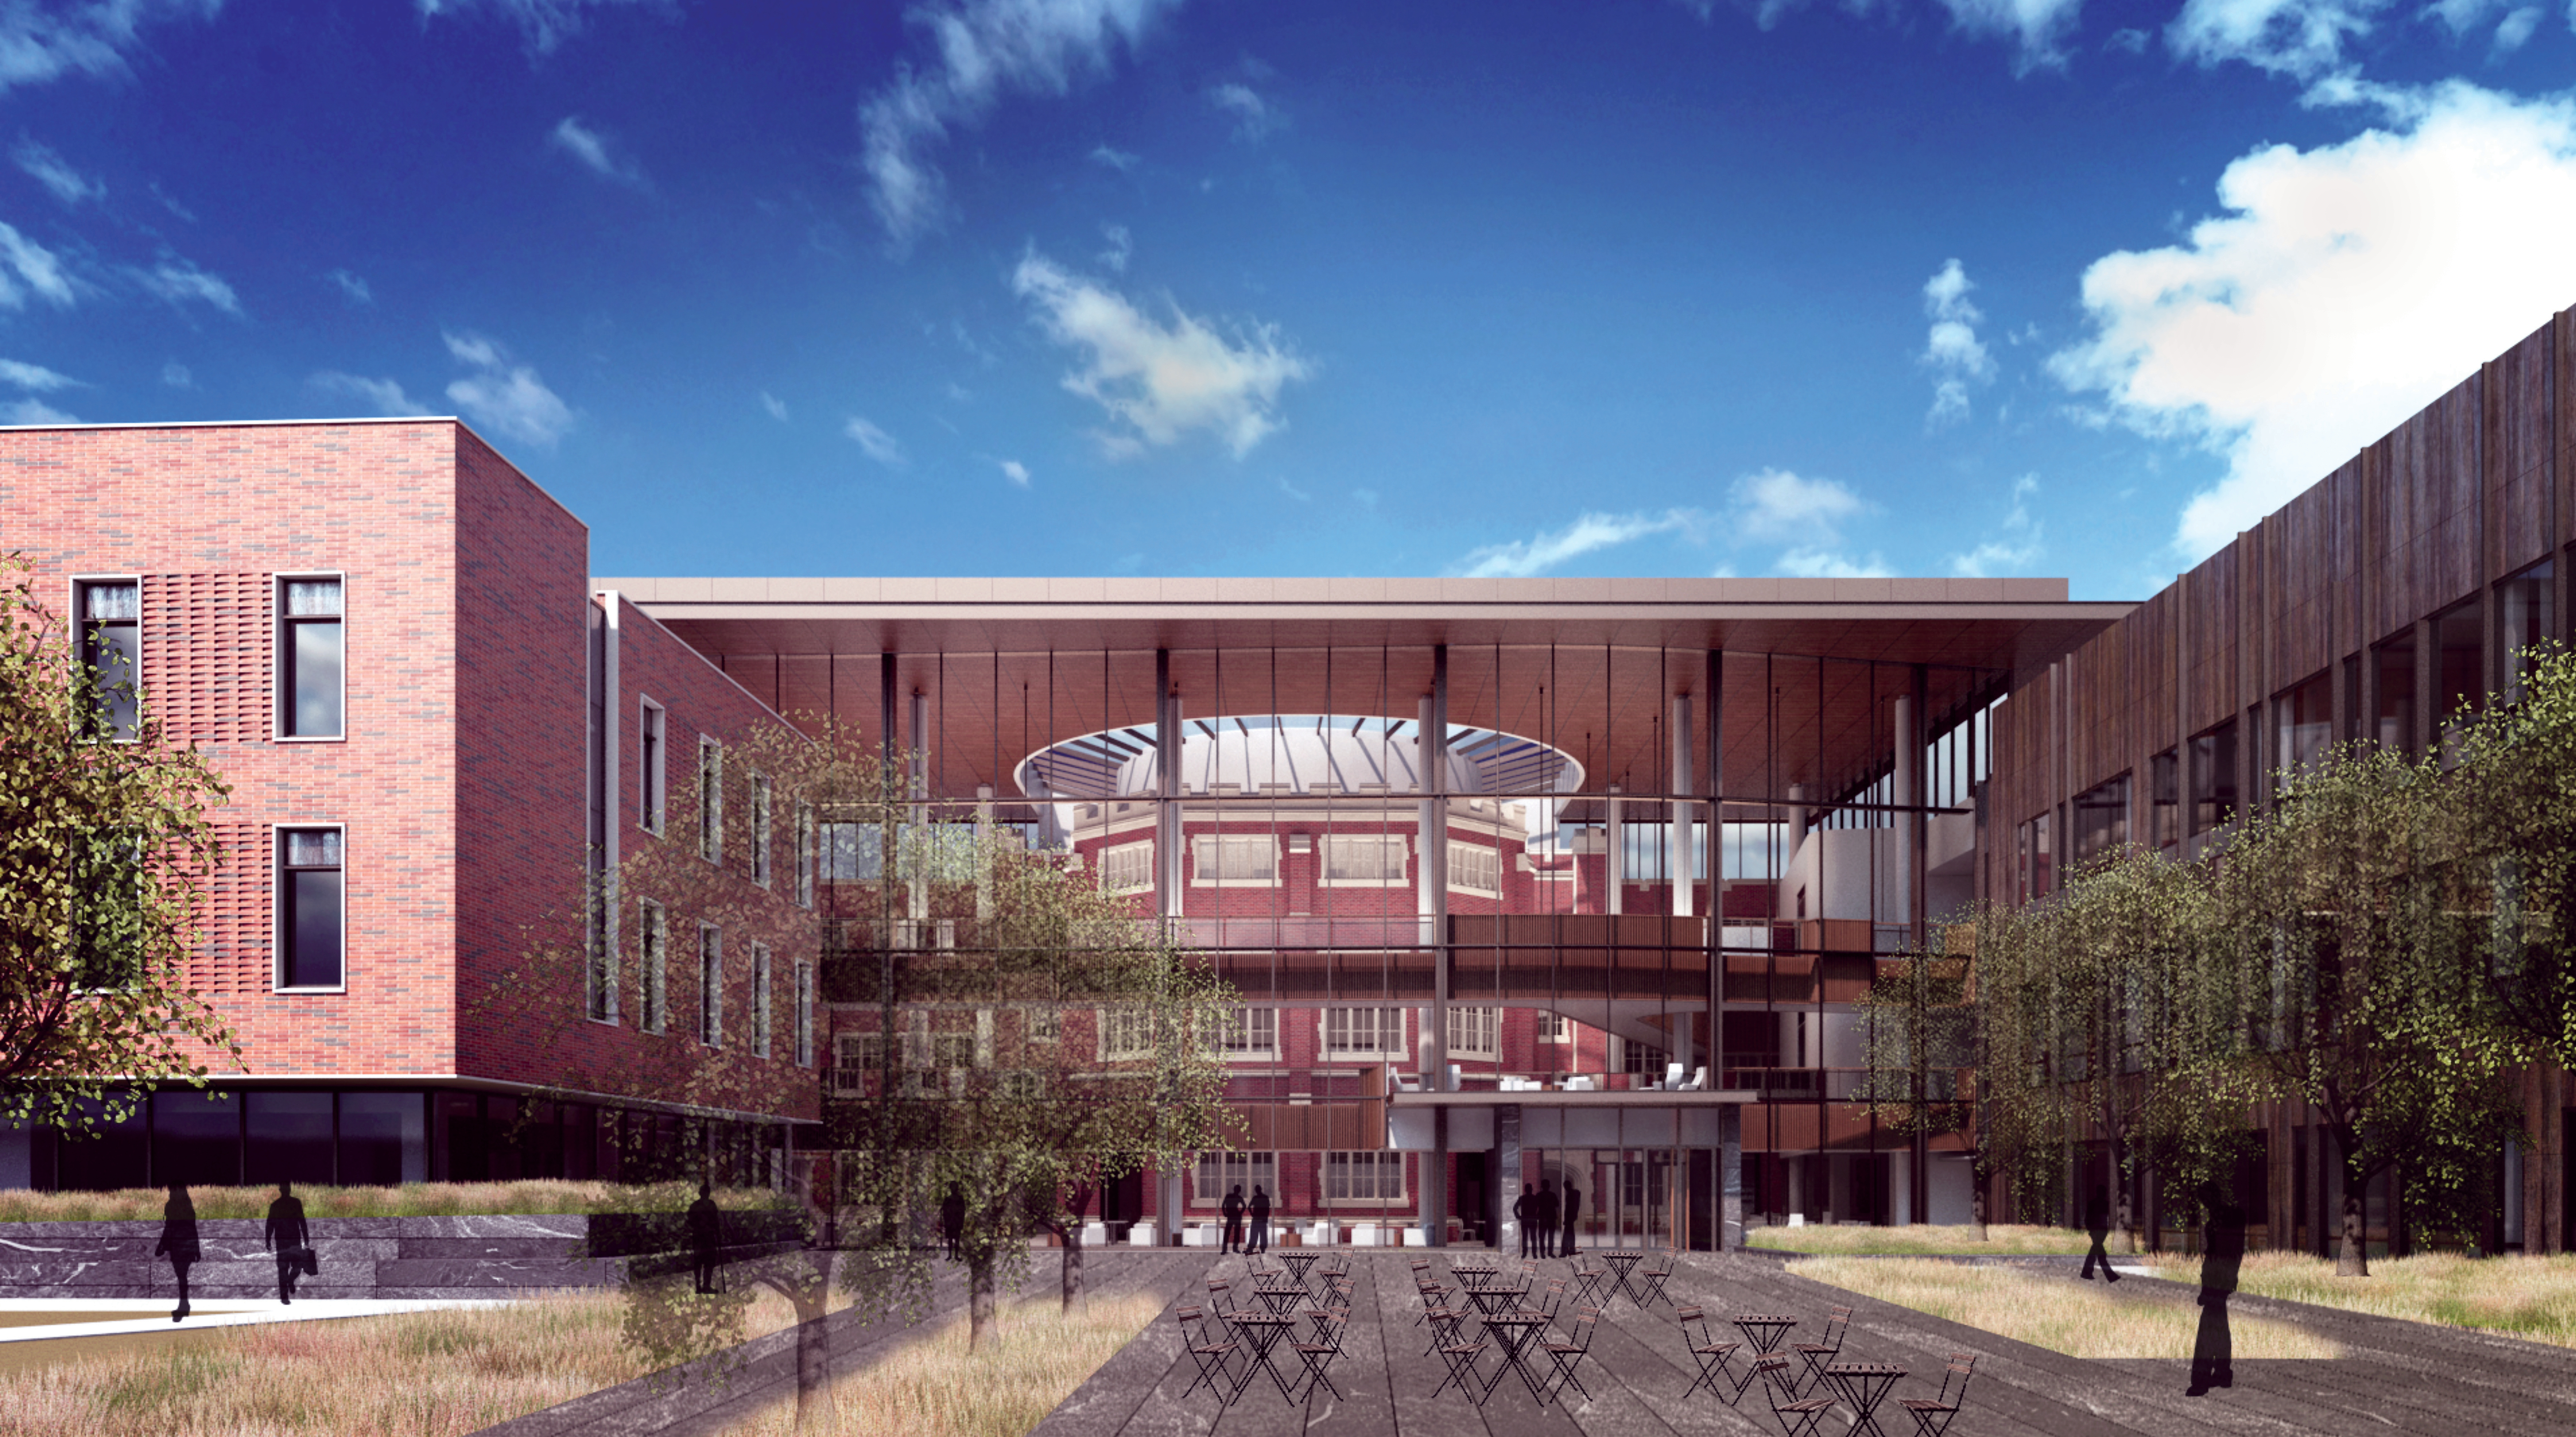 Artist rendering of HSSC main entrance, showing external learning spaces as well as atrium with skylight over ARH elbow.